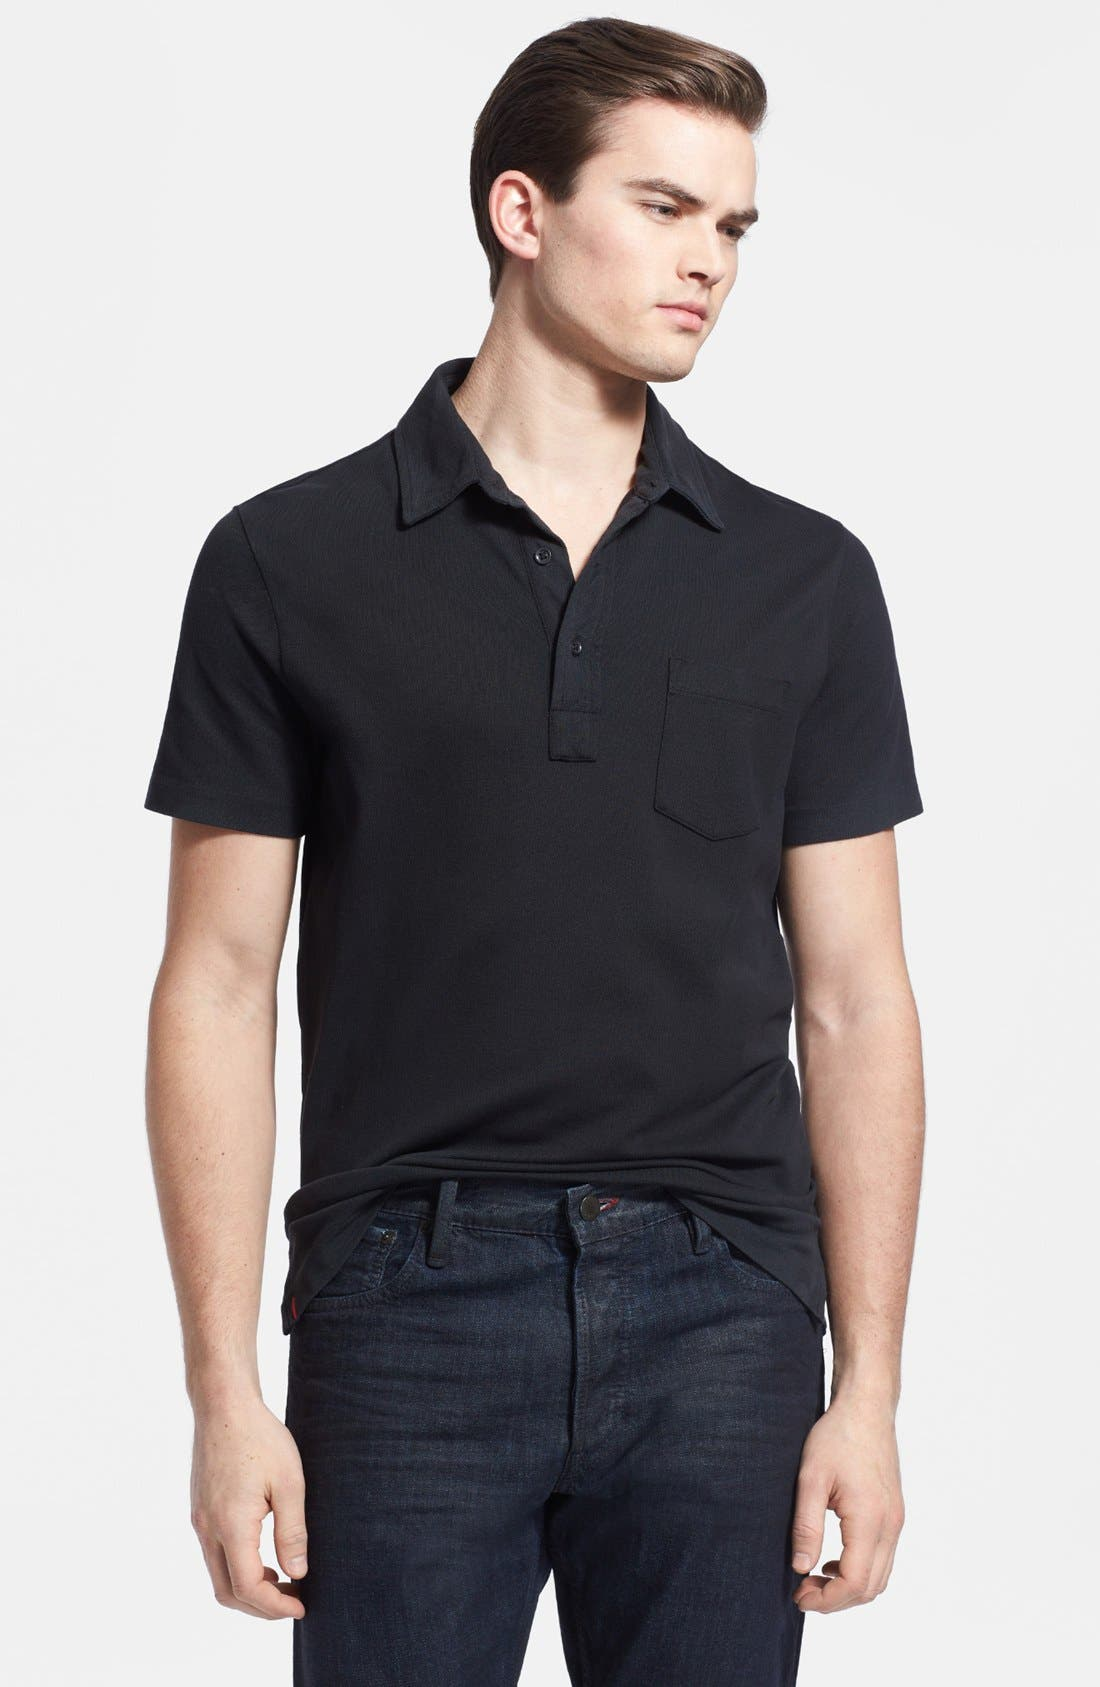 Alternate Image 1 Selected - Ralph Lauren Black Label Stretch Piqué Polo